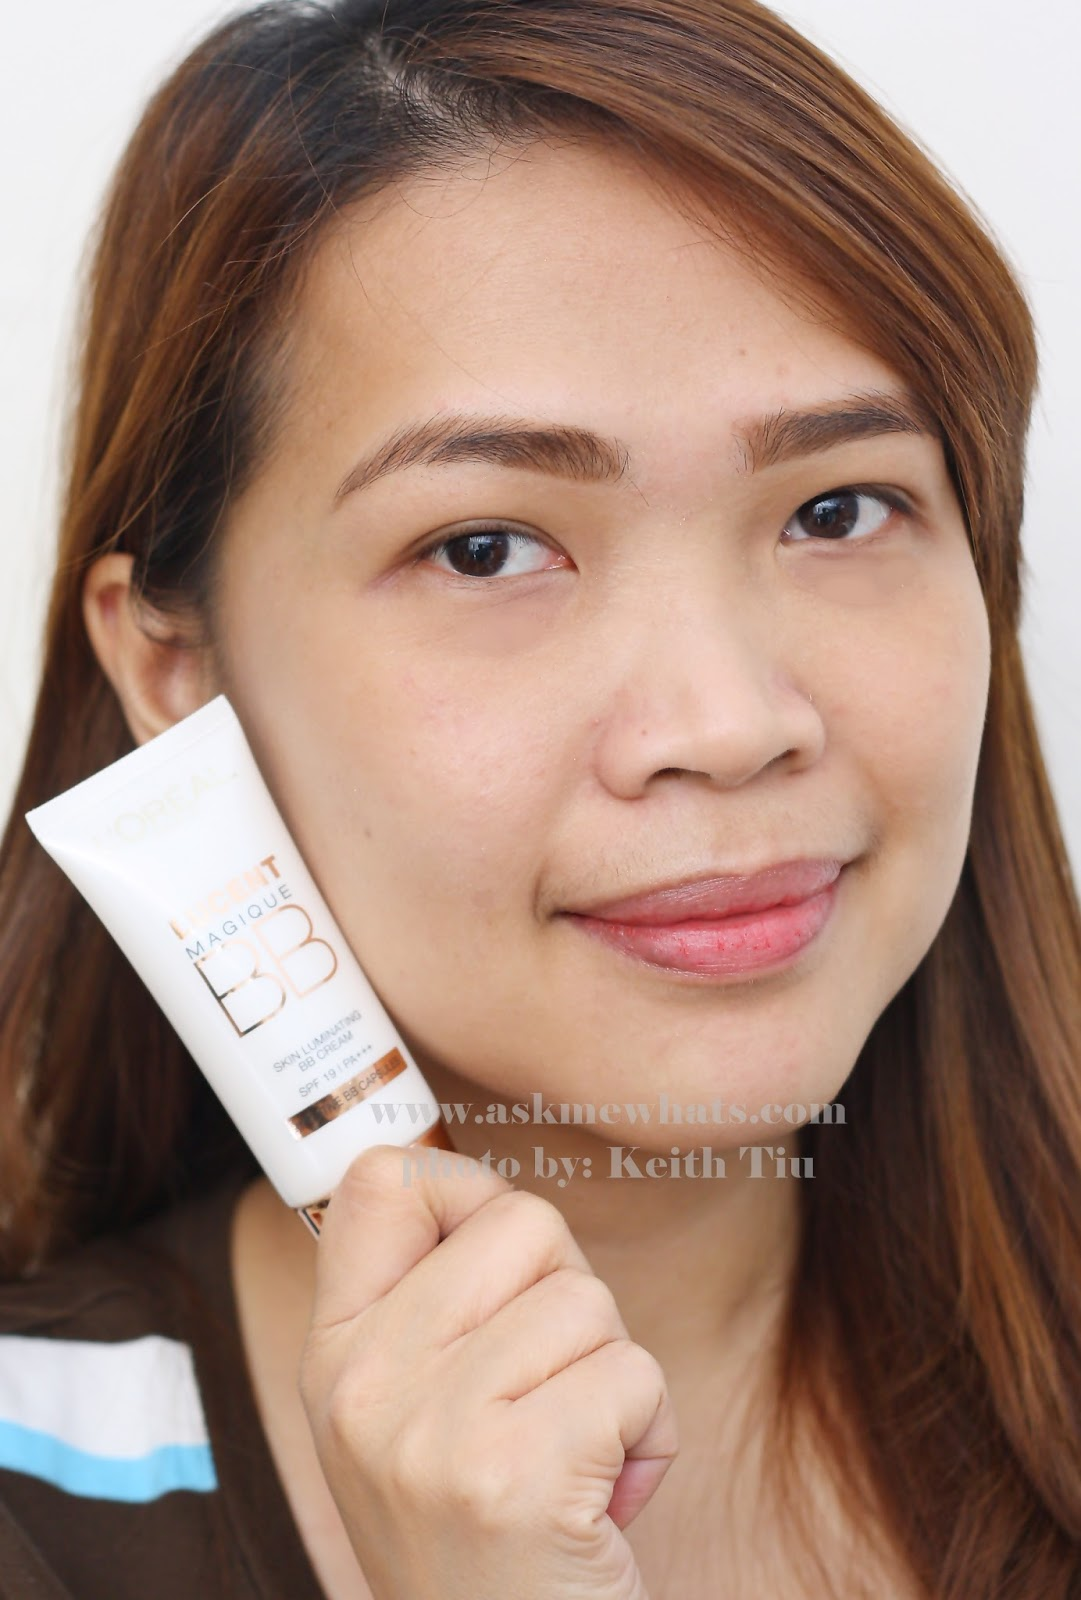 L'Oreal Paris Lucent Magique BB Skin Luminizing BB Cream SPF19 review.